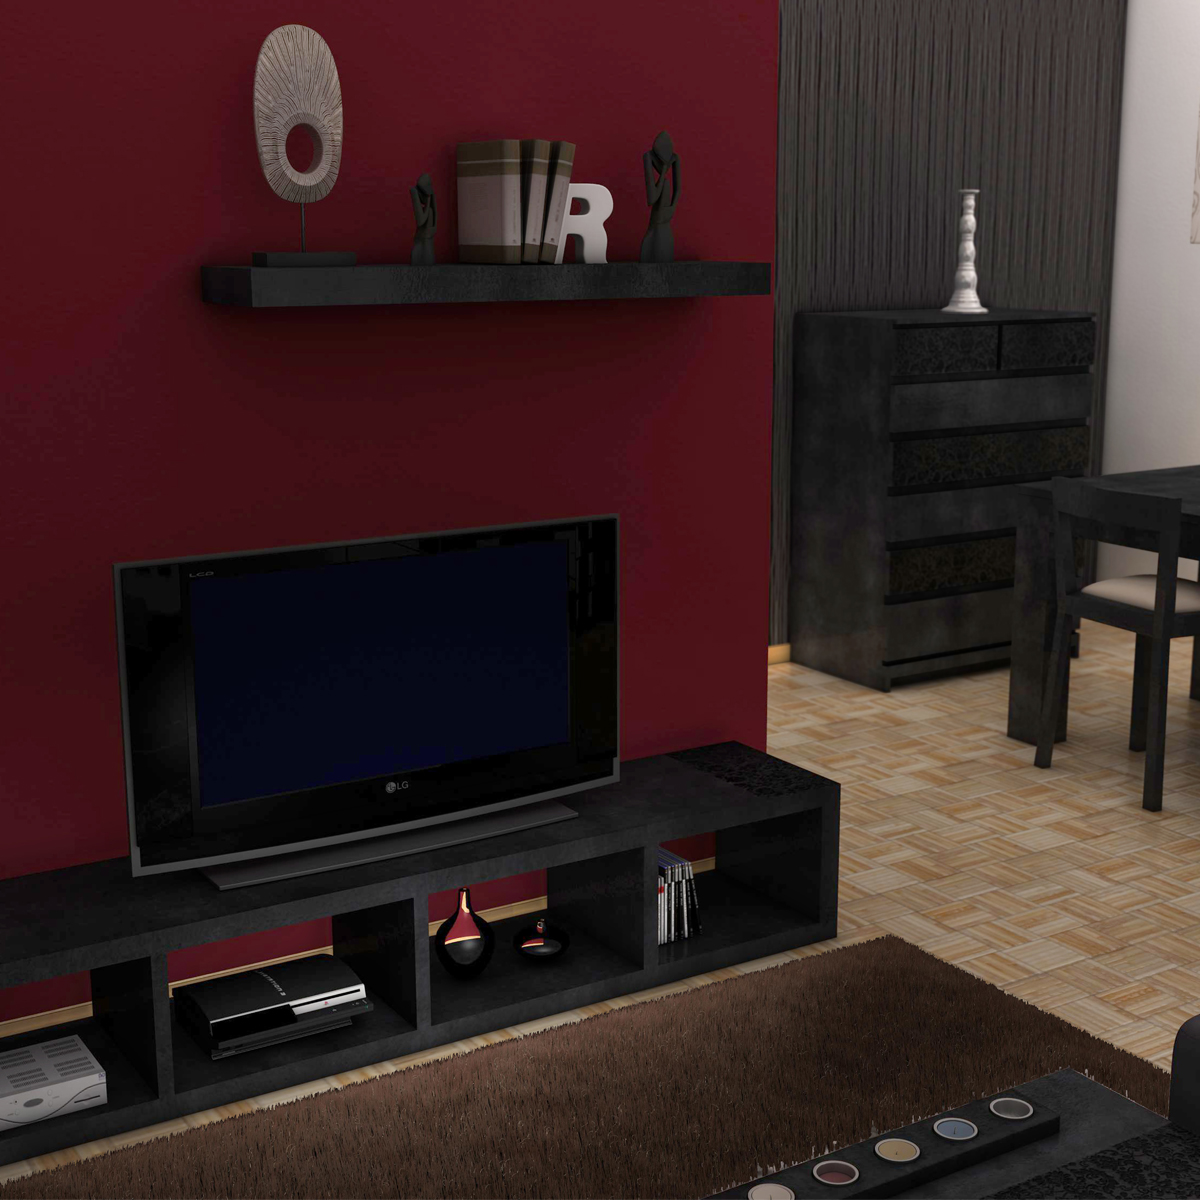 living room 3d model 3ds max fbx c4d ma mb obj 159607